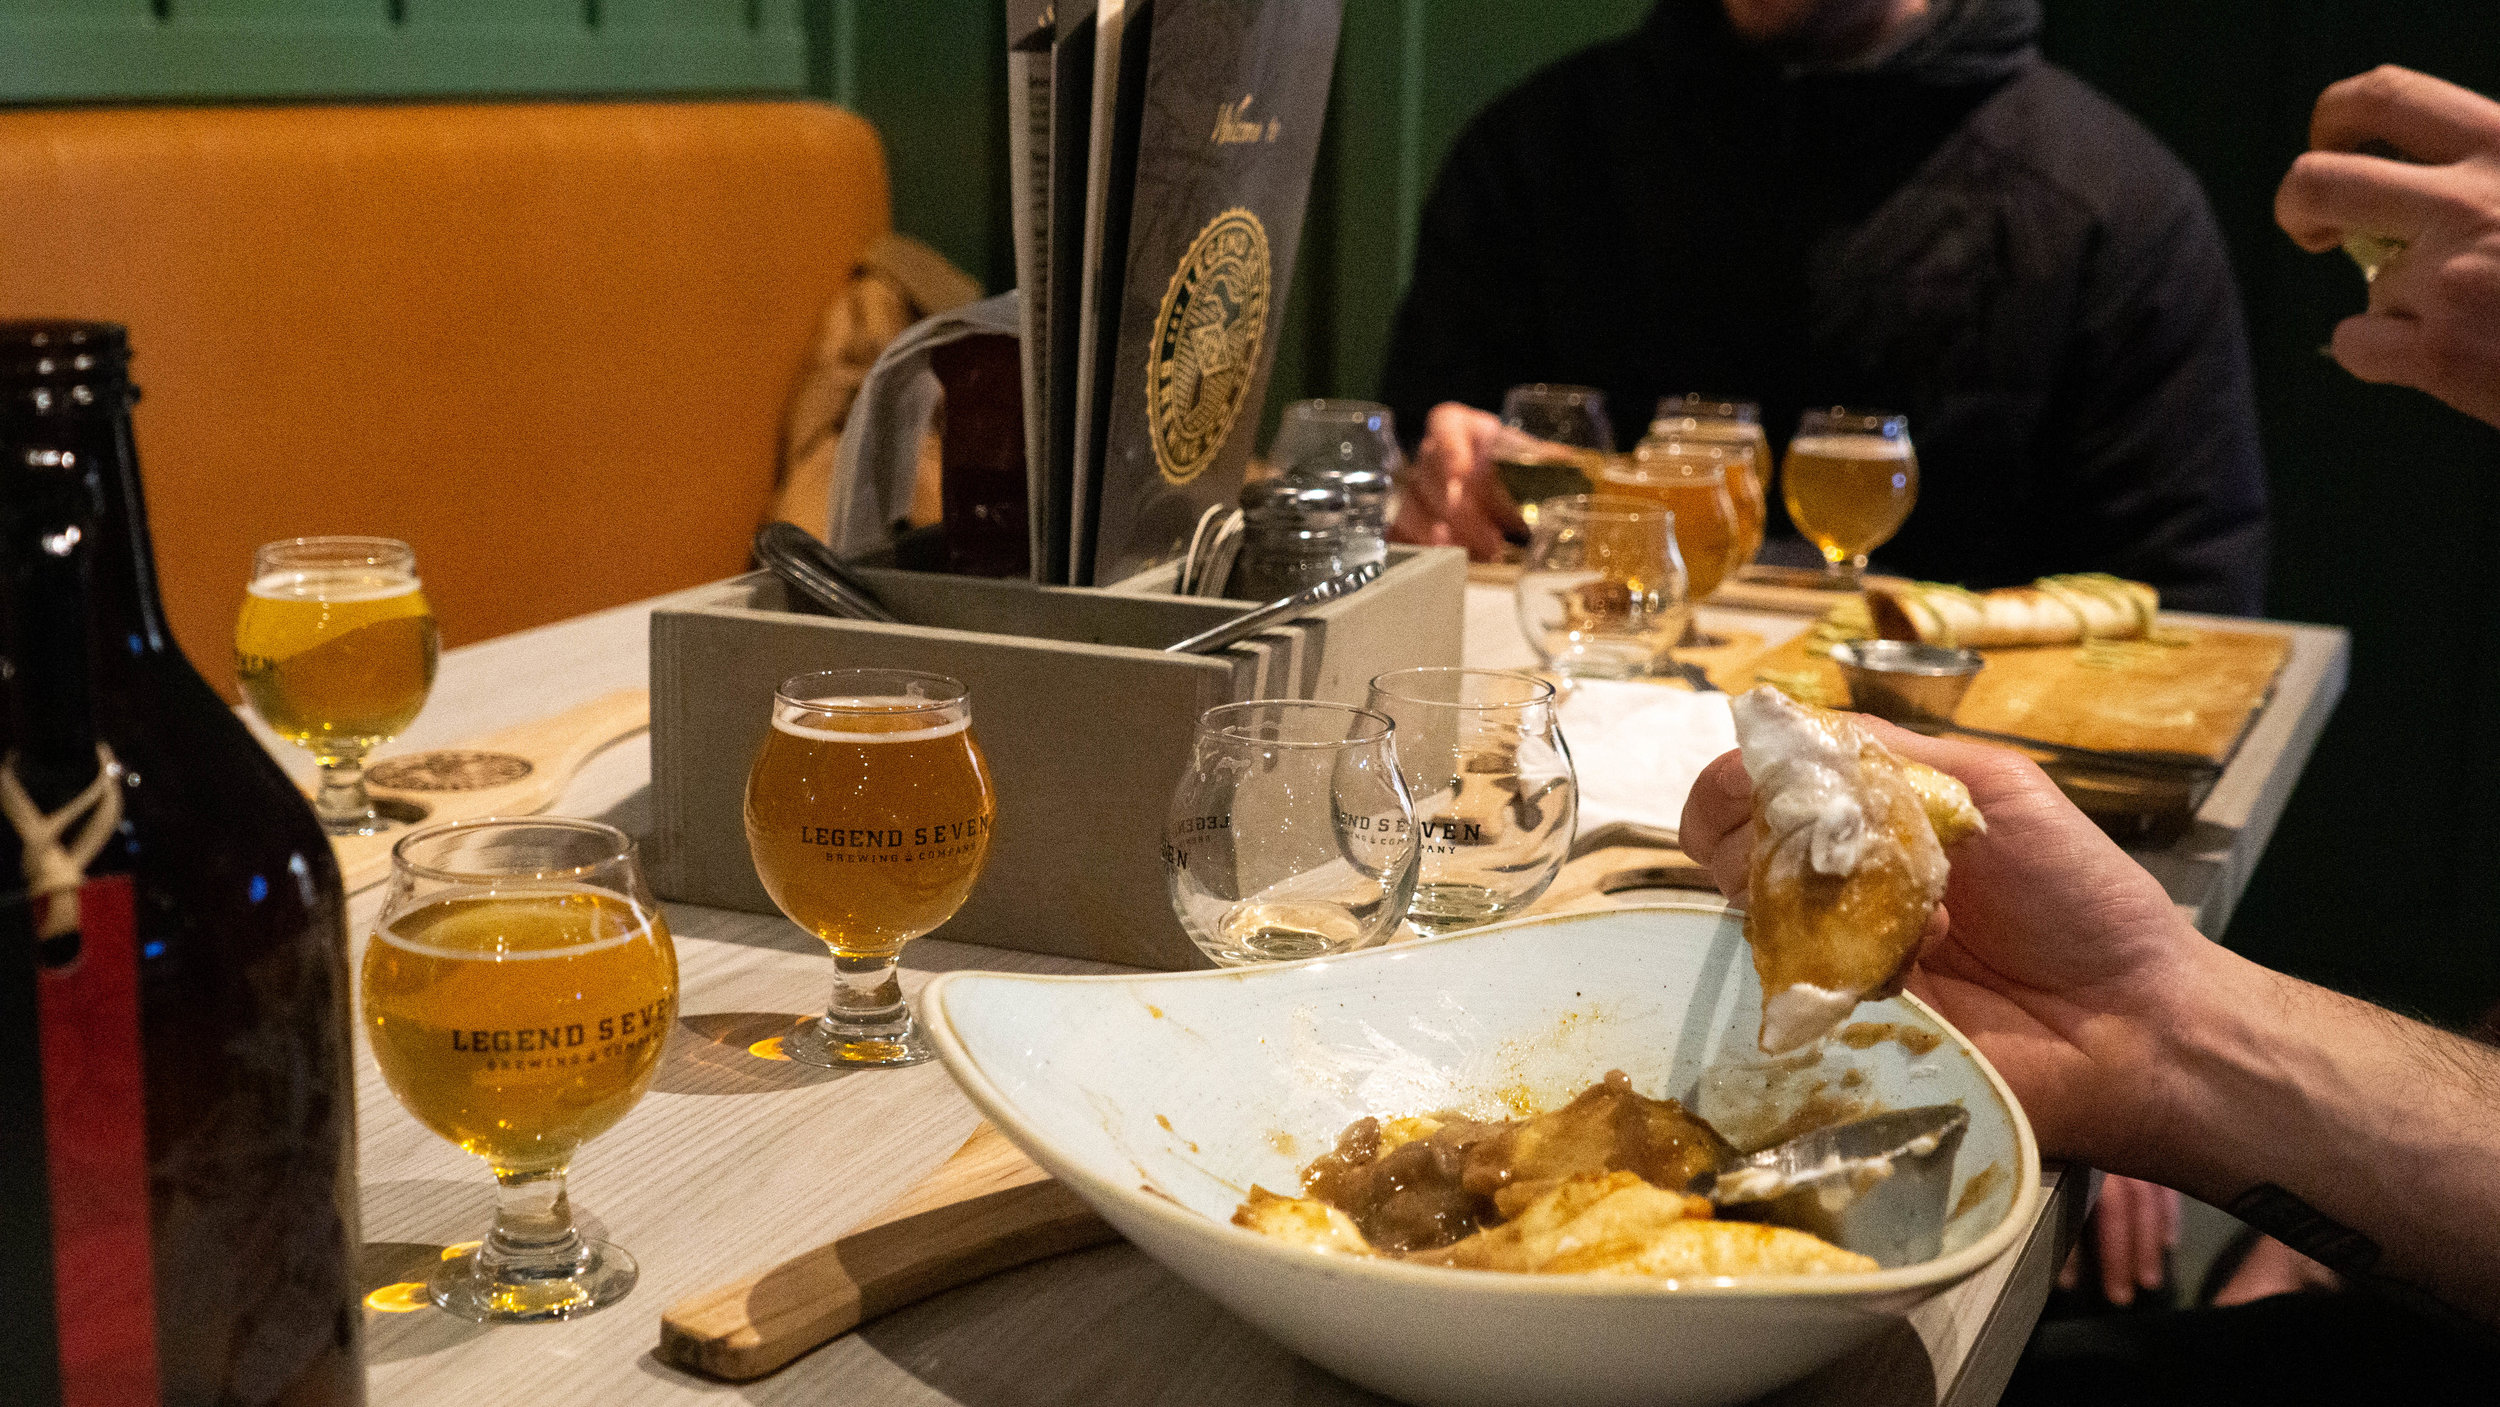 Each of our craft brewery tour line-ups incorporates a stop with food along the way - what pairs better with great craft beers than delicious eats!?